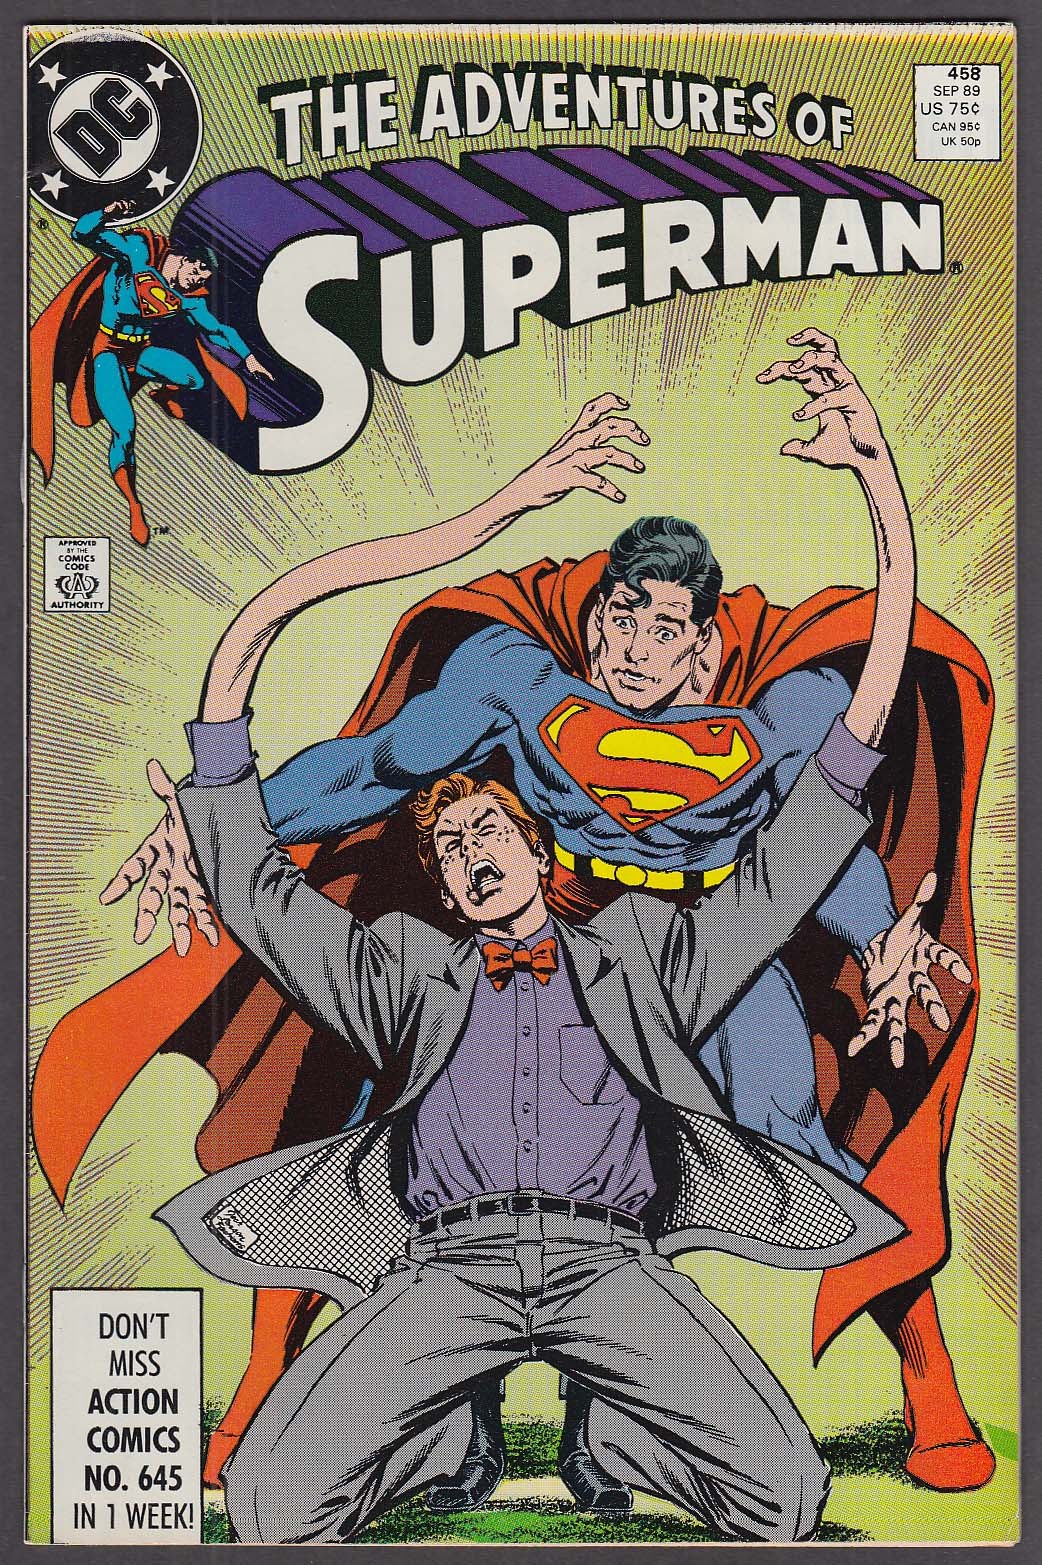 ADVENTURES of SUPERMAN #458 DC comic book 9 1989